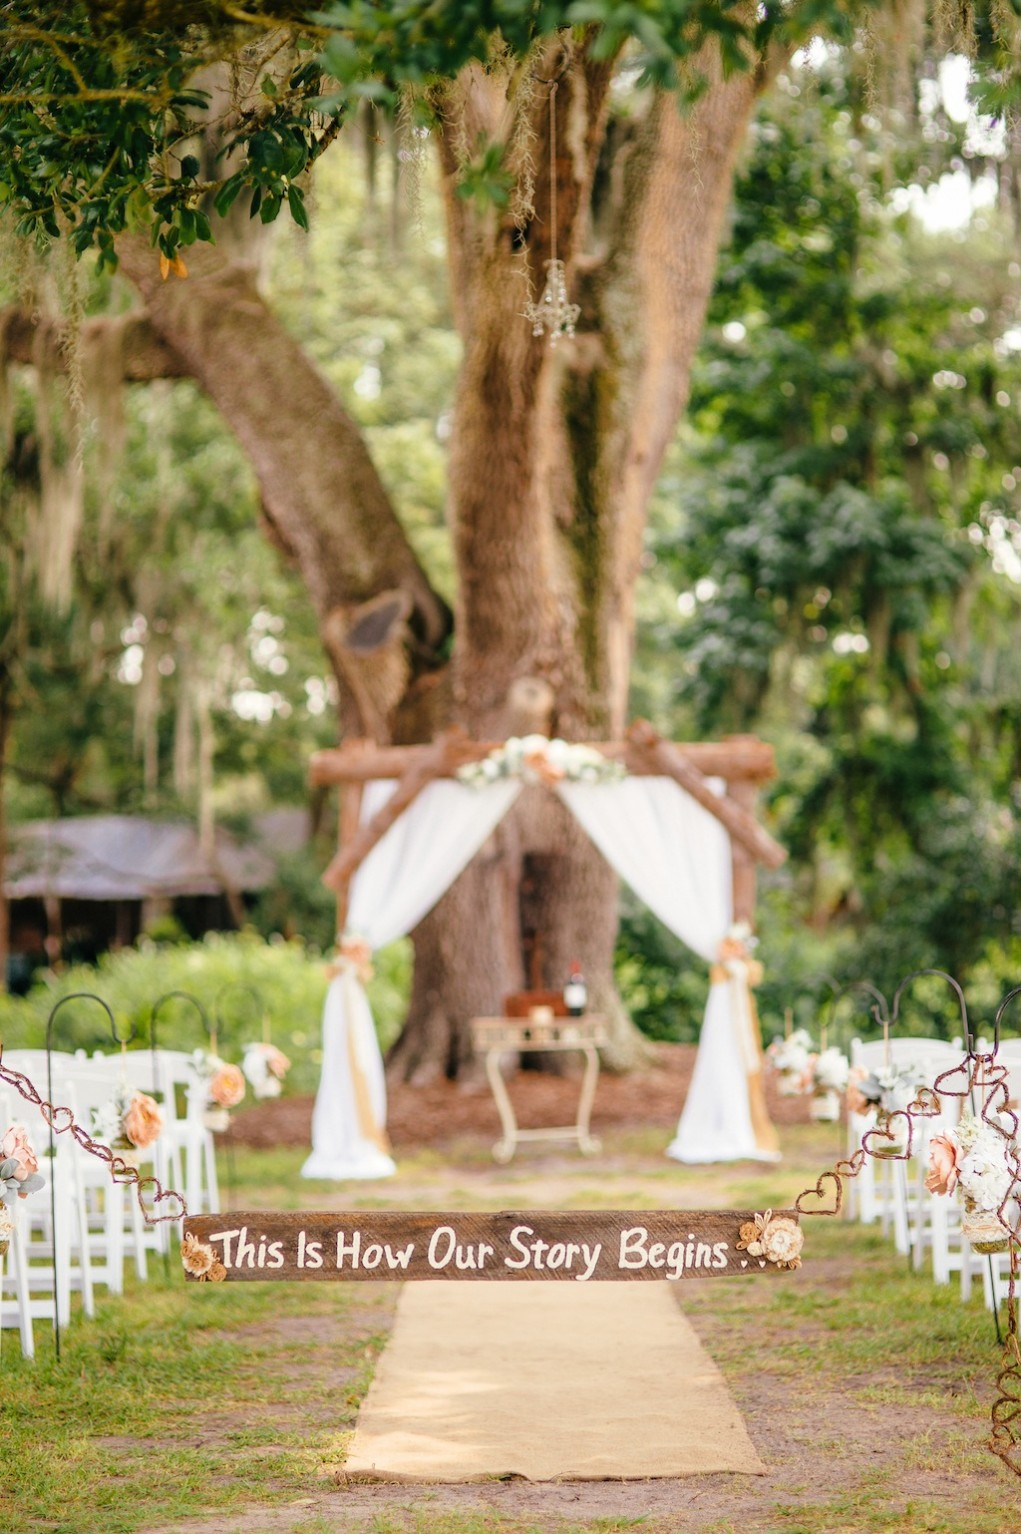 Cross Creek Ranch Wedding near Tampa Bay, Fl - Rustic Rose, Burlap and Lace by Lakeland Wedding Photographer Sunglow Photography (10)